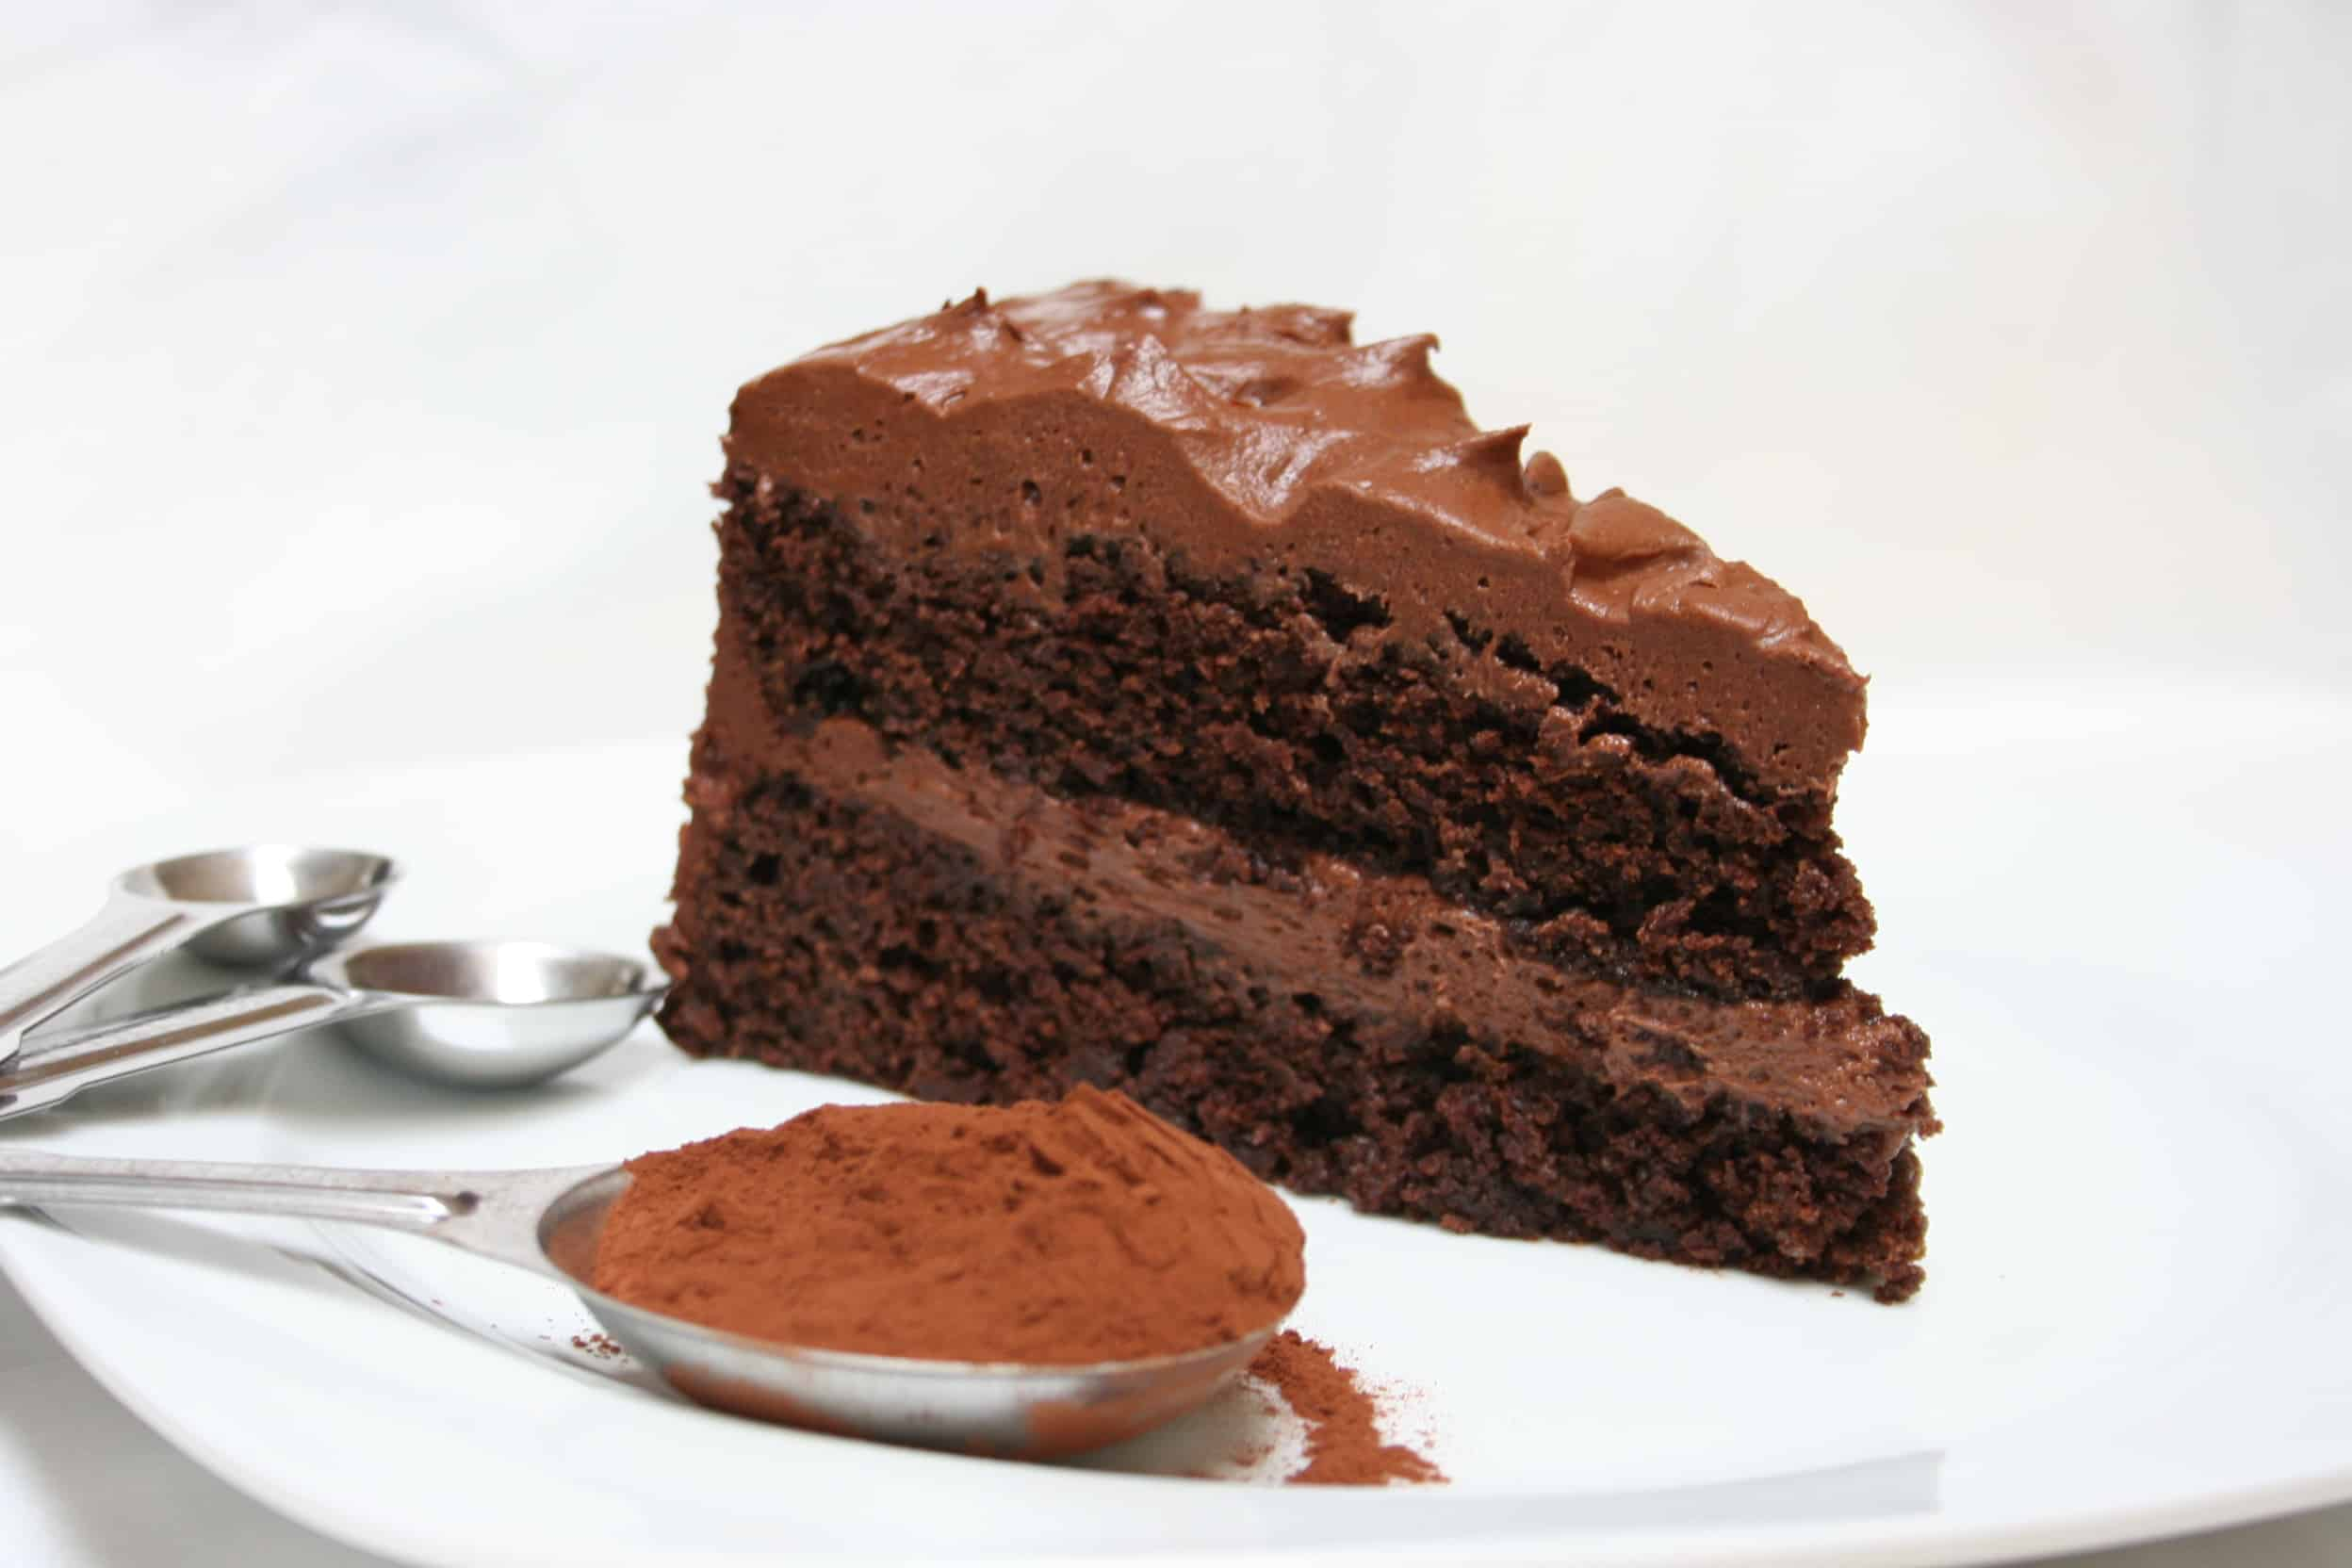 Ghrirardelli Grand Fudge Cake with Chocolate Buttercream Frosting | Savoring Today